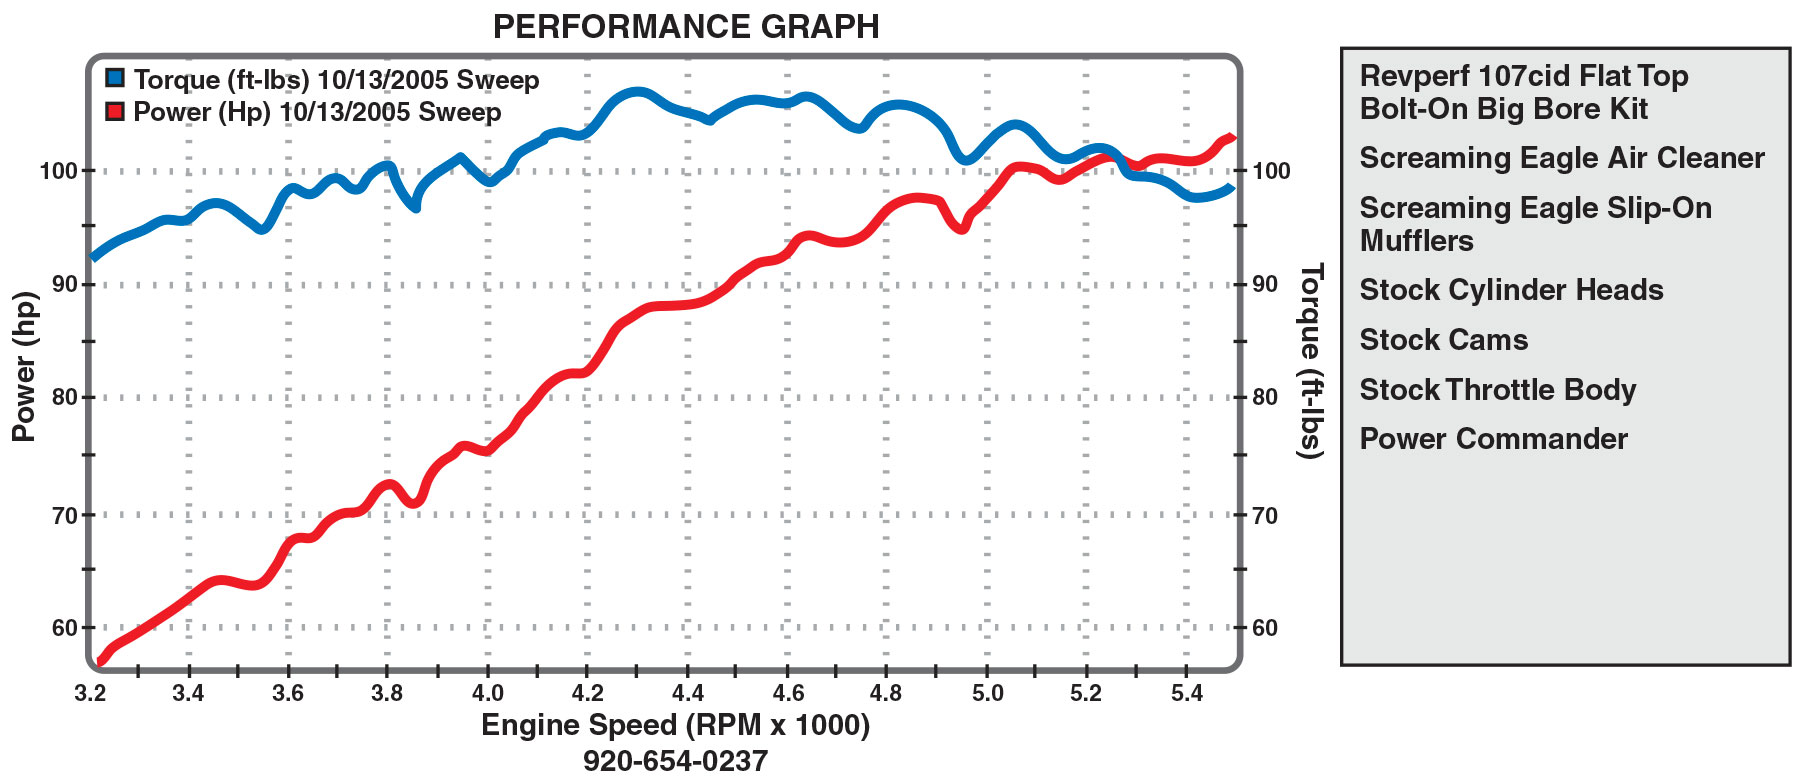 100 cid dyno chart for Revolution Performance